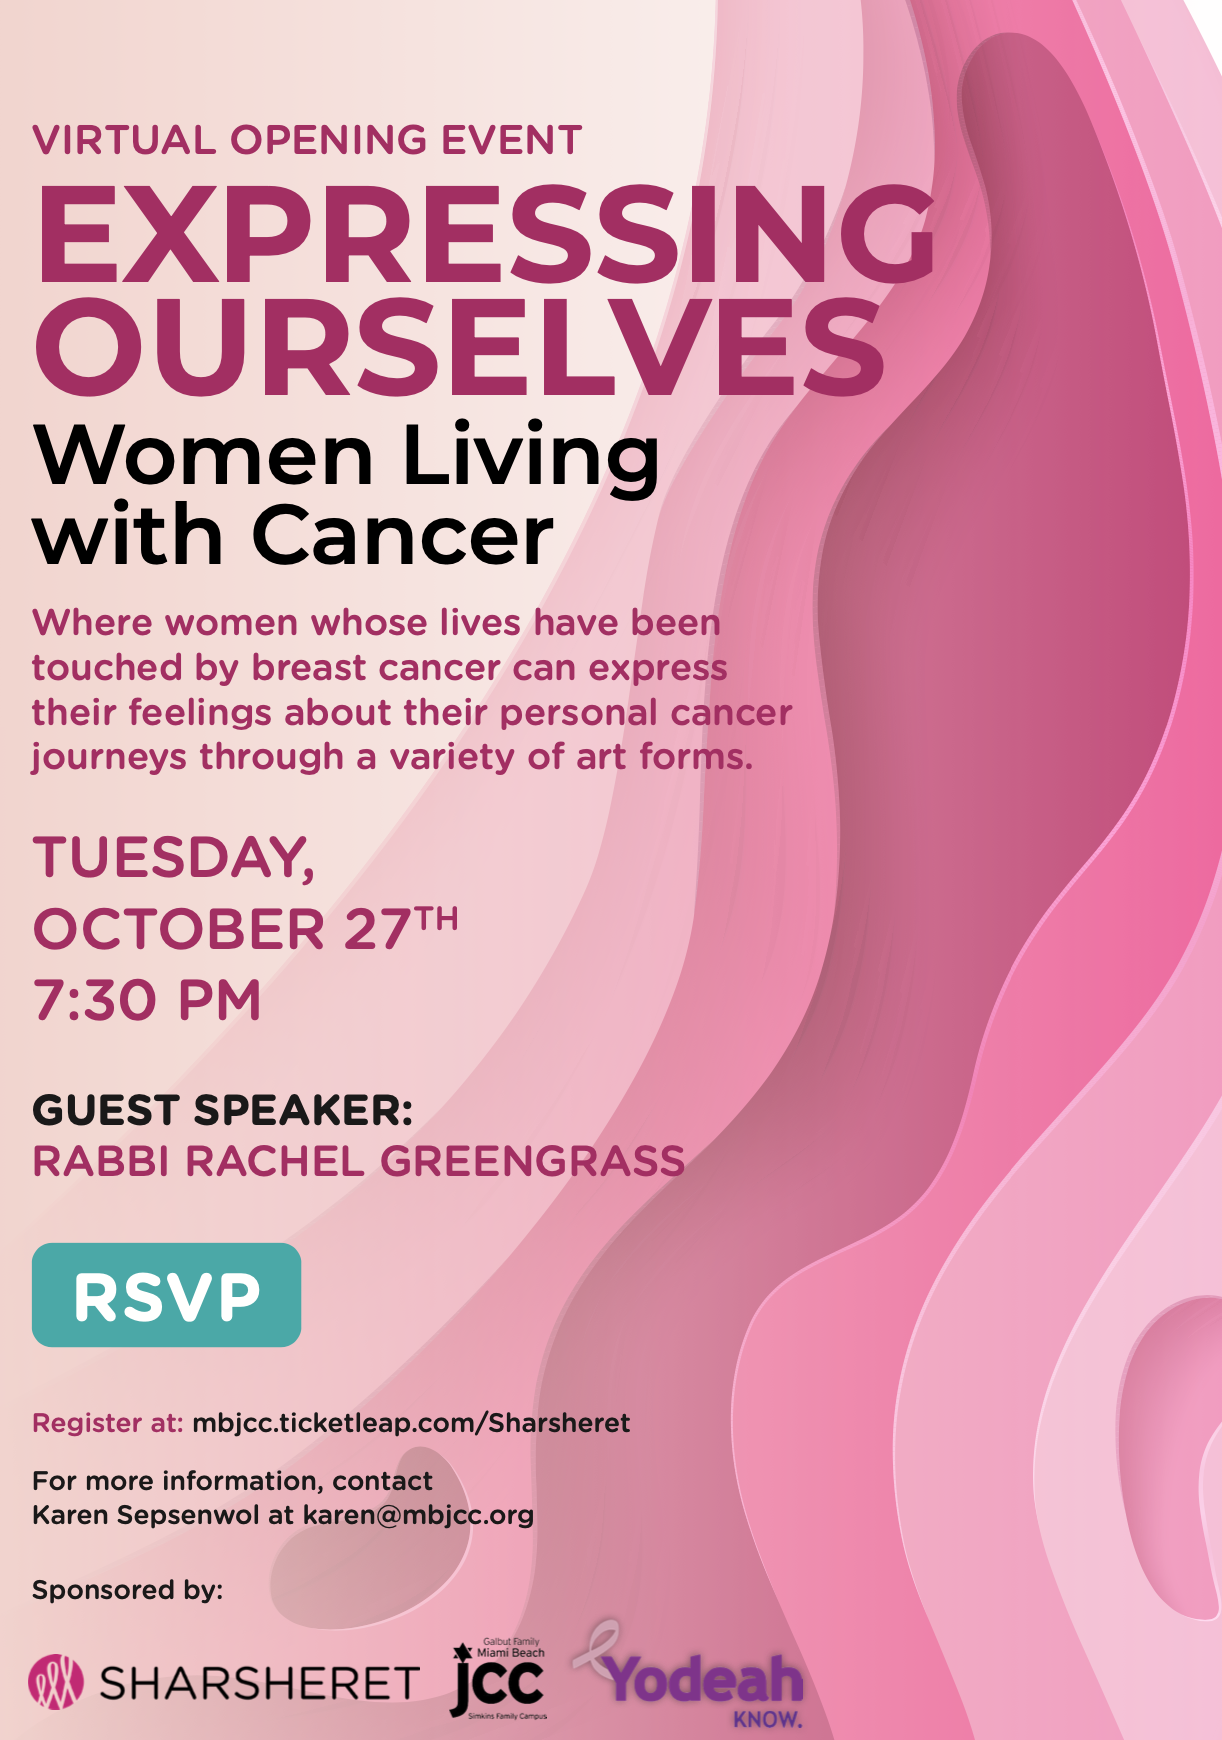 Virtual Opening Event: Expressing Ourselves - Women Living with Cancer